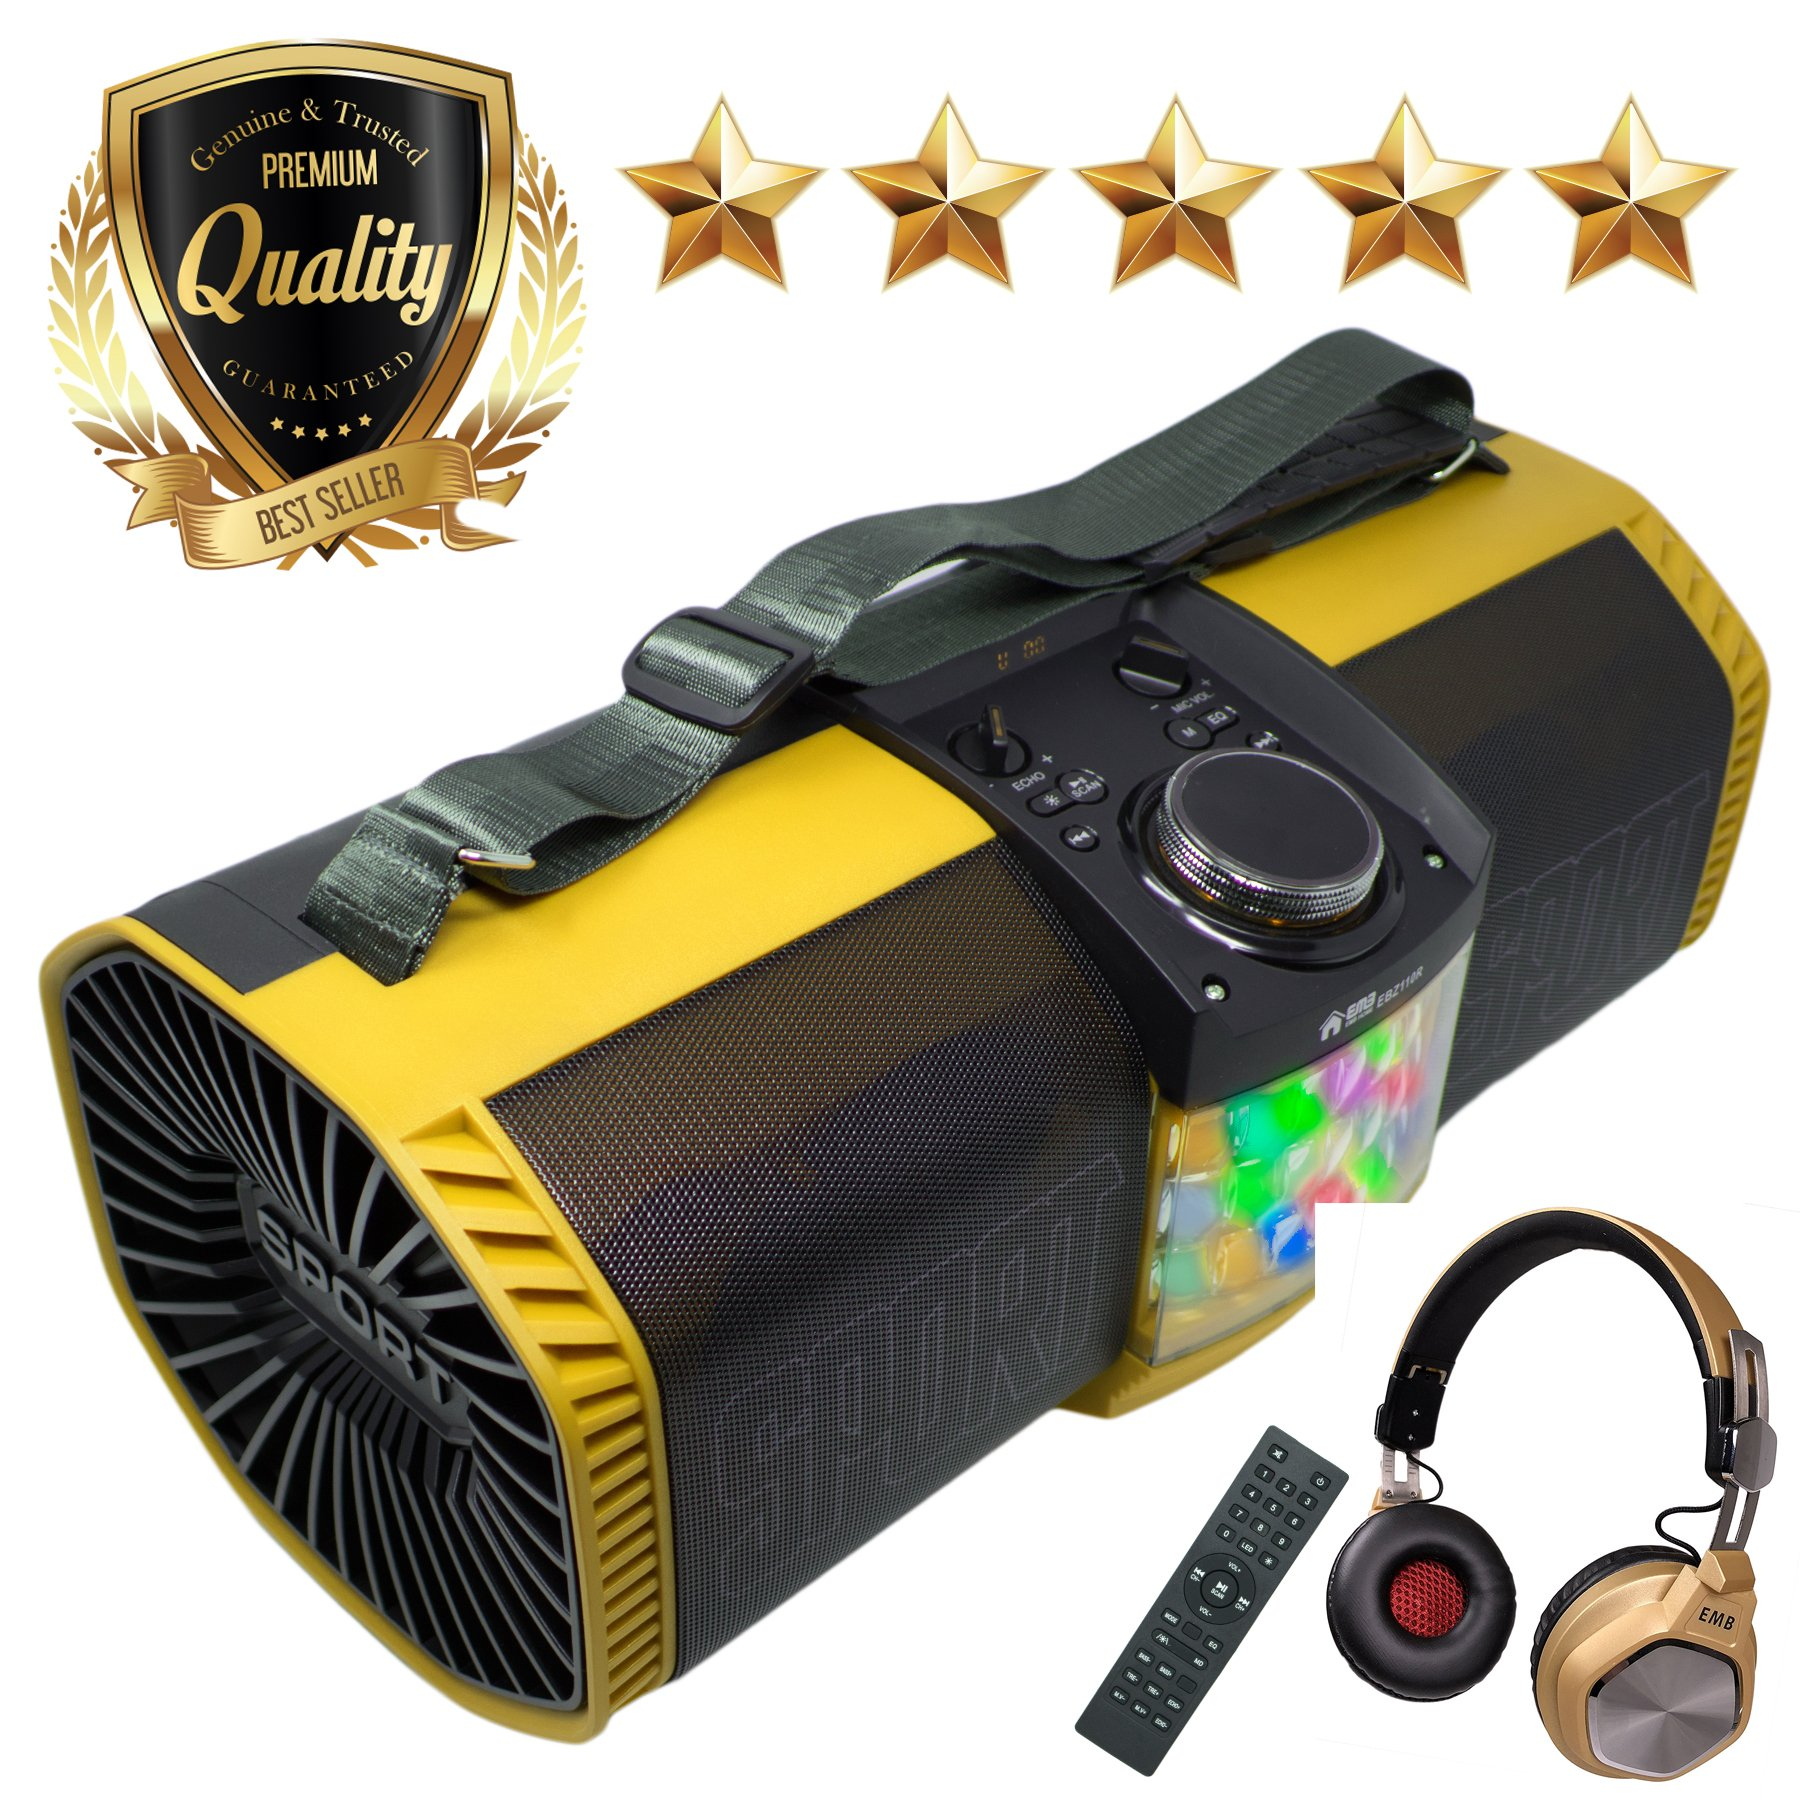 EMB Bluetooth Boombox Street Disco Stereo Speaker - 3600mAH Rechargeable Battery Portable Wireless 300 Watts Power FM Radio/MP3 Player w/Remote and Disco Lights w/EMB Headphone (Yellow) by EMB Professional